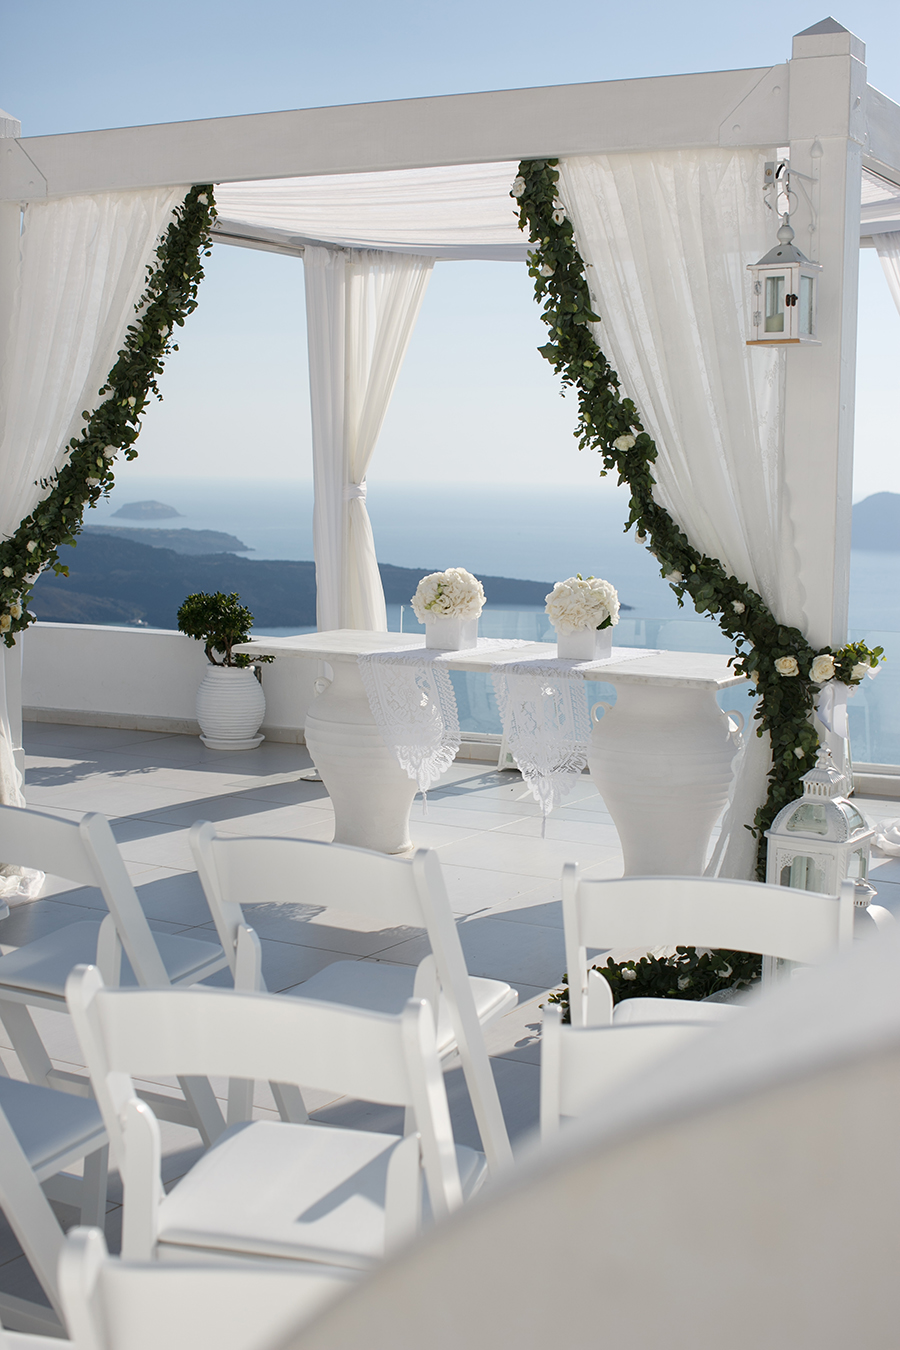 Destination wedding in Greece